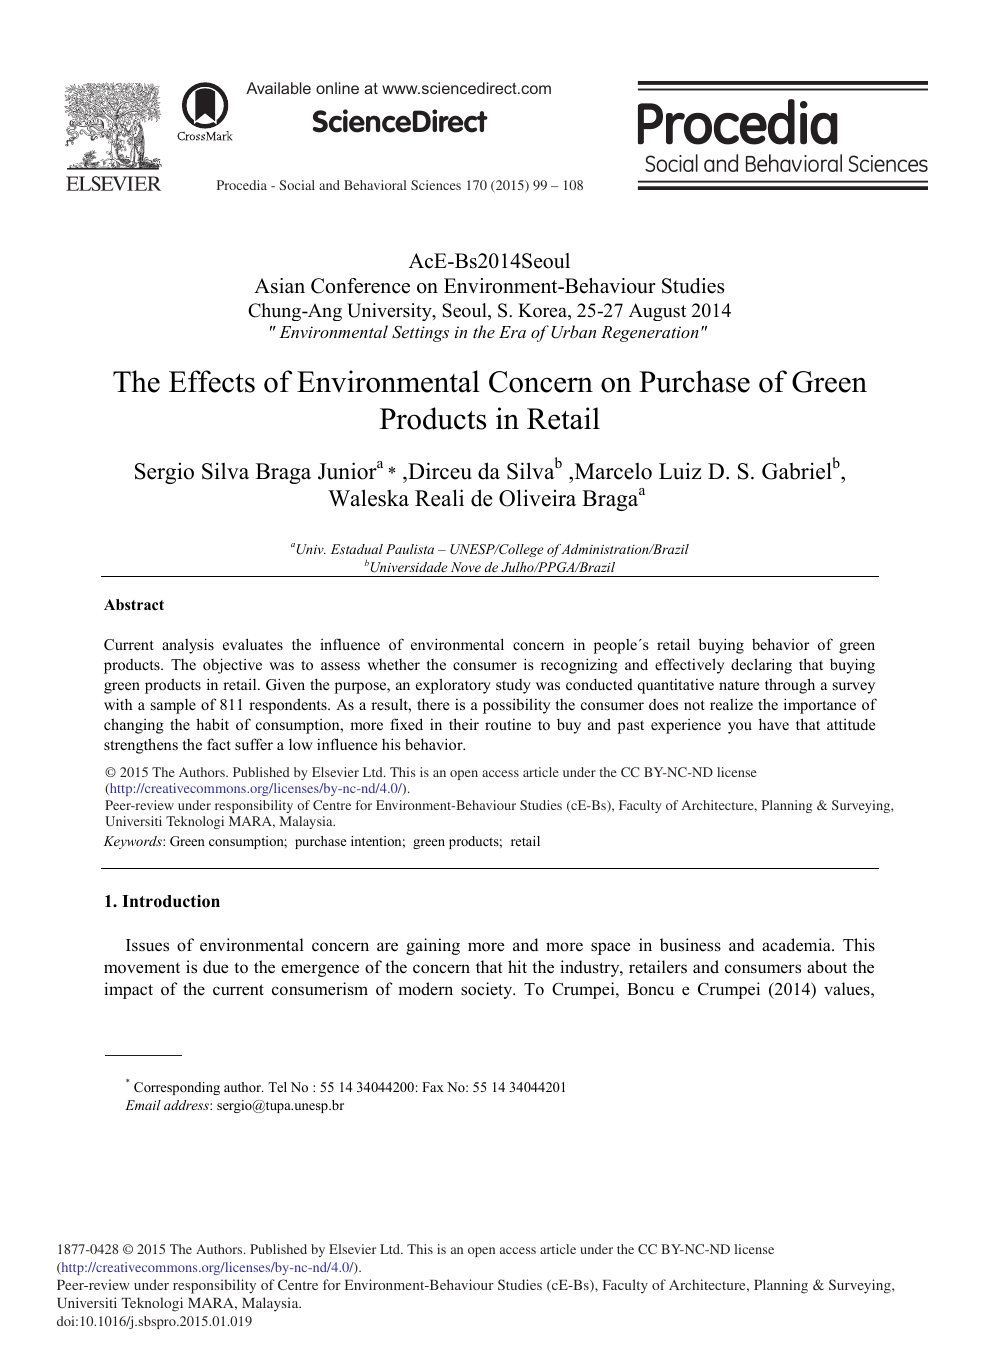 Pay to do environmental studies article top dissertation conclusion writers website for masters